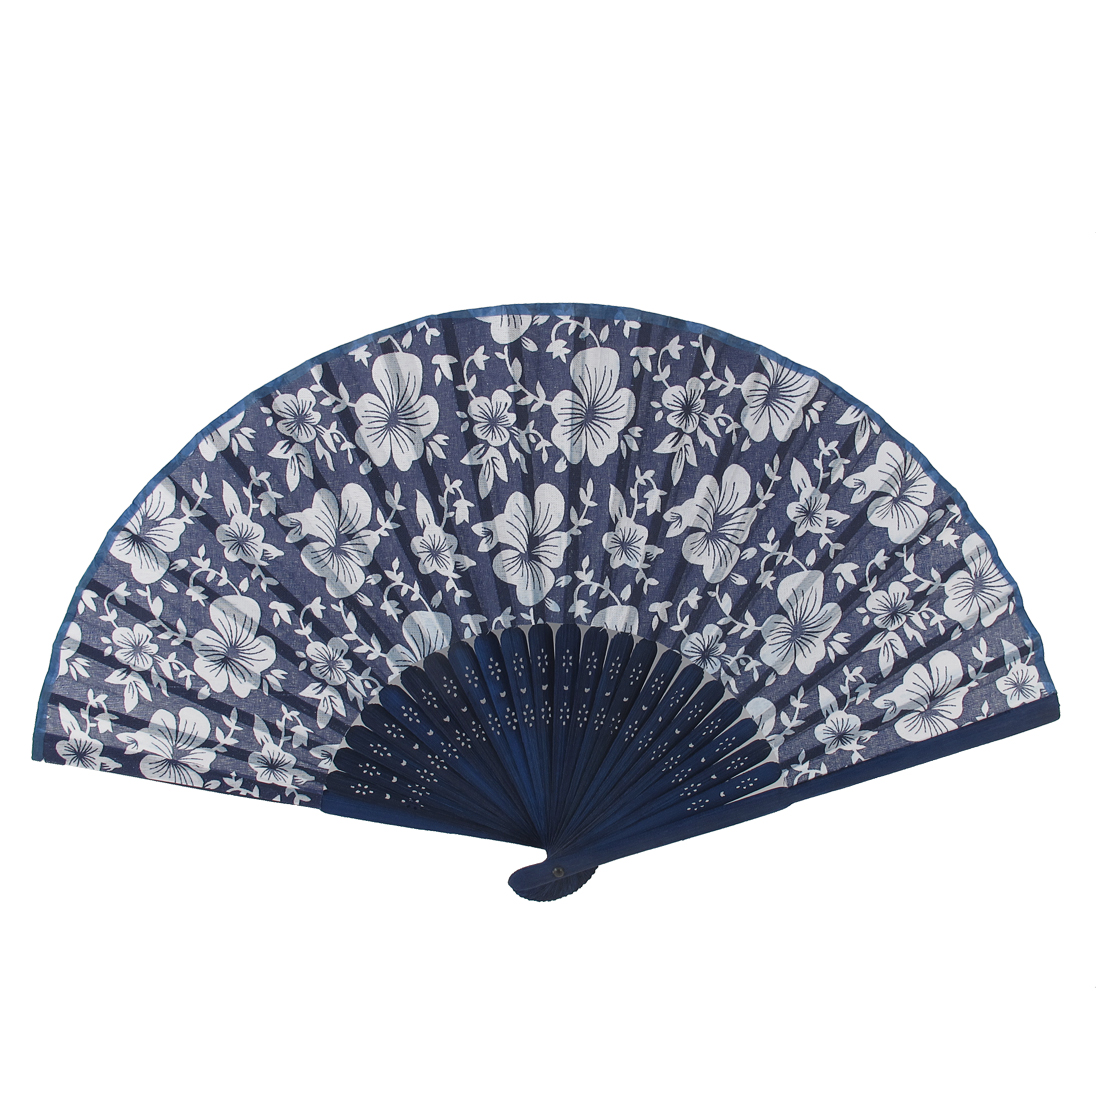 Bloming Flowers Printed Bamboo Frame Portable Foldable Summer Hand Fan